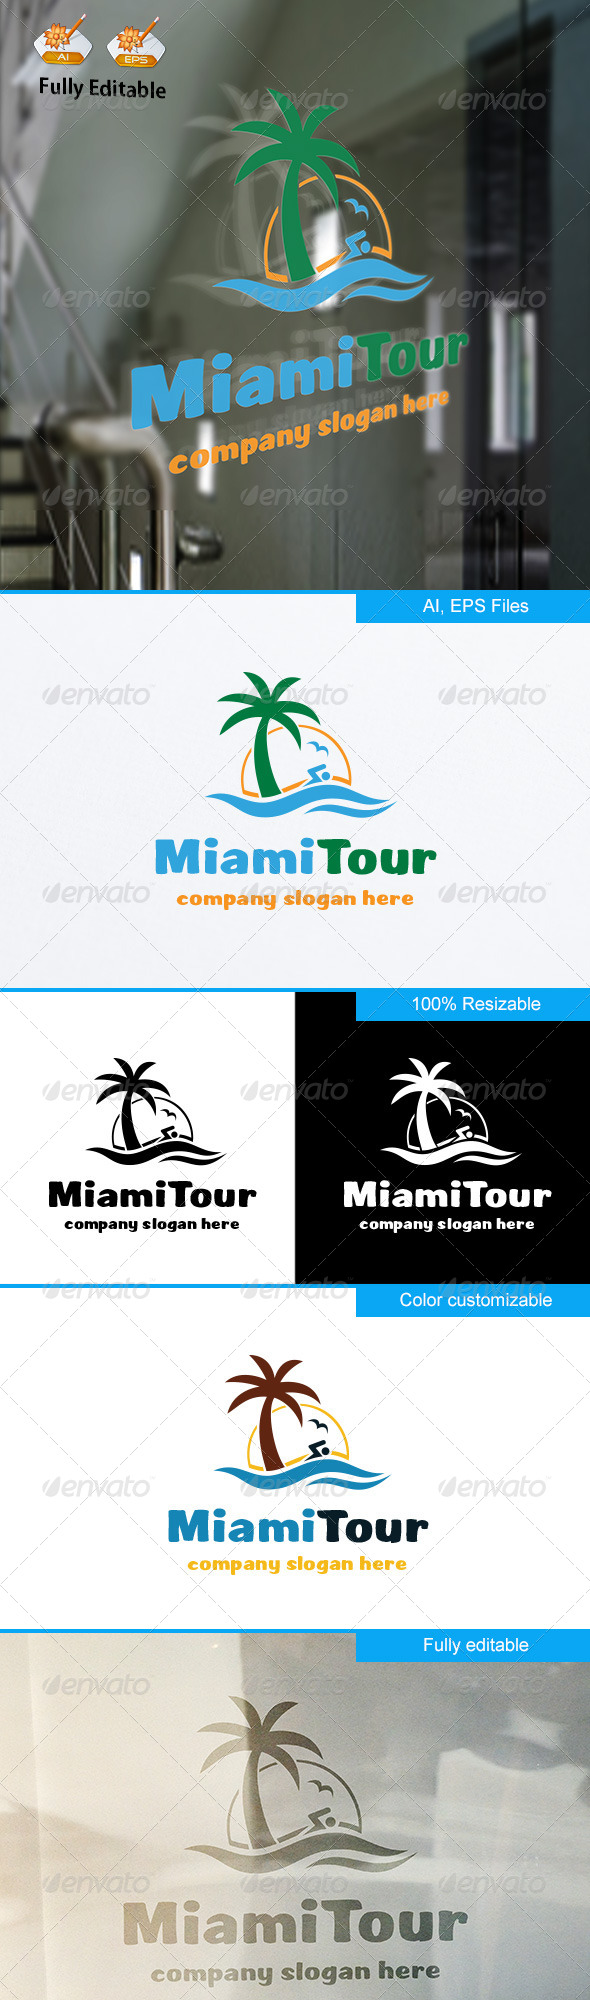 GraphicRiver MiamiTour logo 8519102